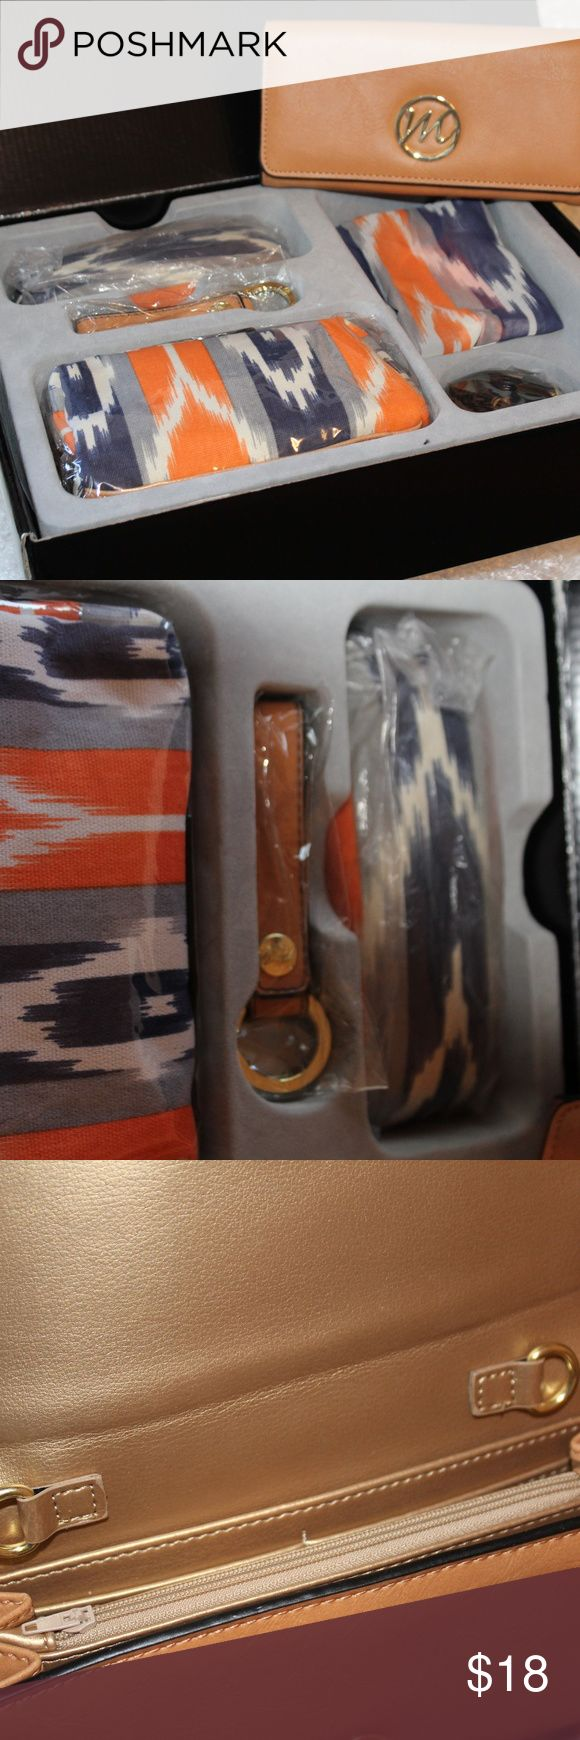 Sahara Breeze Gift Set Brand new in box! This is a fantastic little gift set!  matching wallet, cosmetic case, eyeglass case, key chain, and scarf. Also included is a strap for the wallet. Sahara Breeze Accessories